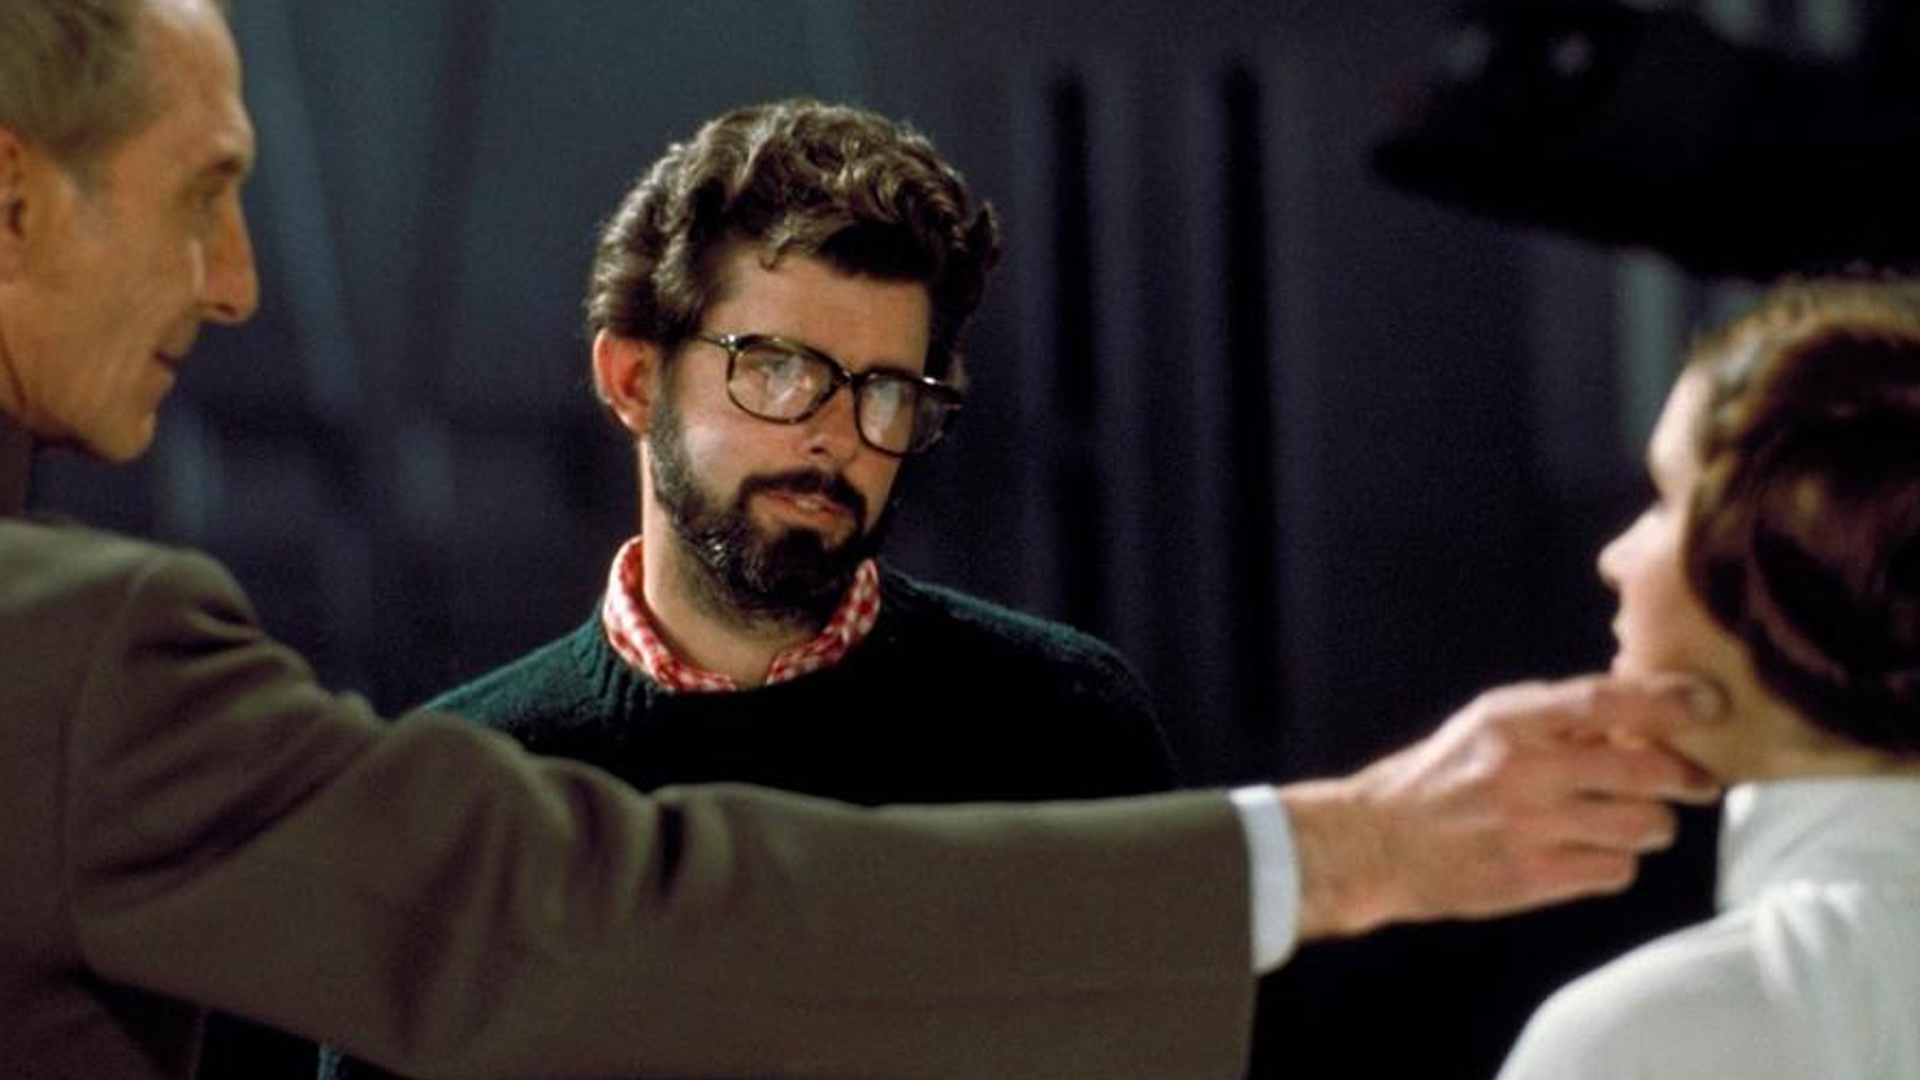 audio-dramatization-of-george-lucas-showing-his-friends-star-wars-for-the-first-time-in-new-blockbuster-podcast-social.jpg